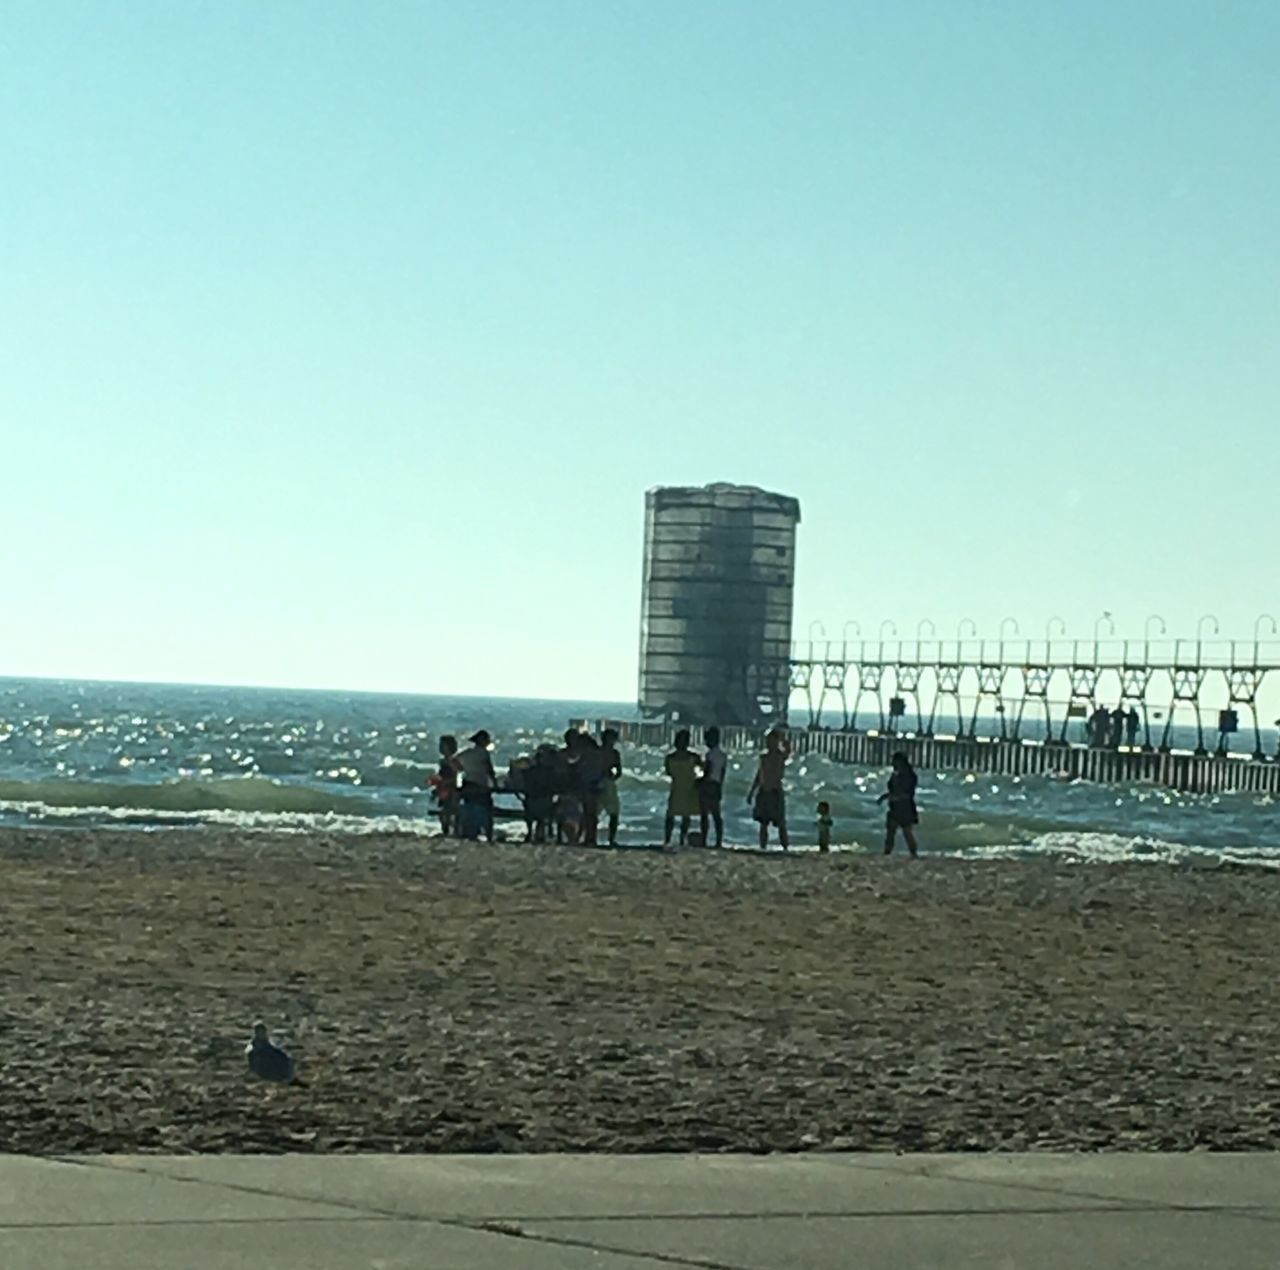 beach, real people, sea, sand, water, leisure activity, day, large group of people, outdoors, clear sky, nature, vacations, lifestyles, sky, architecture, men, built structure, travel destinations, horizon over water, building exterior, people, adult